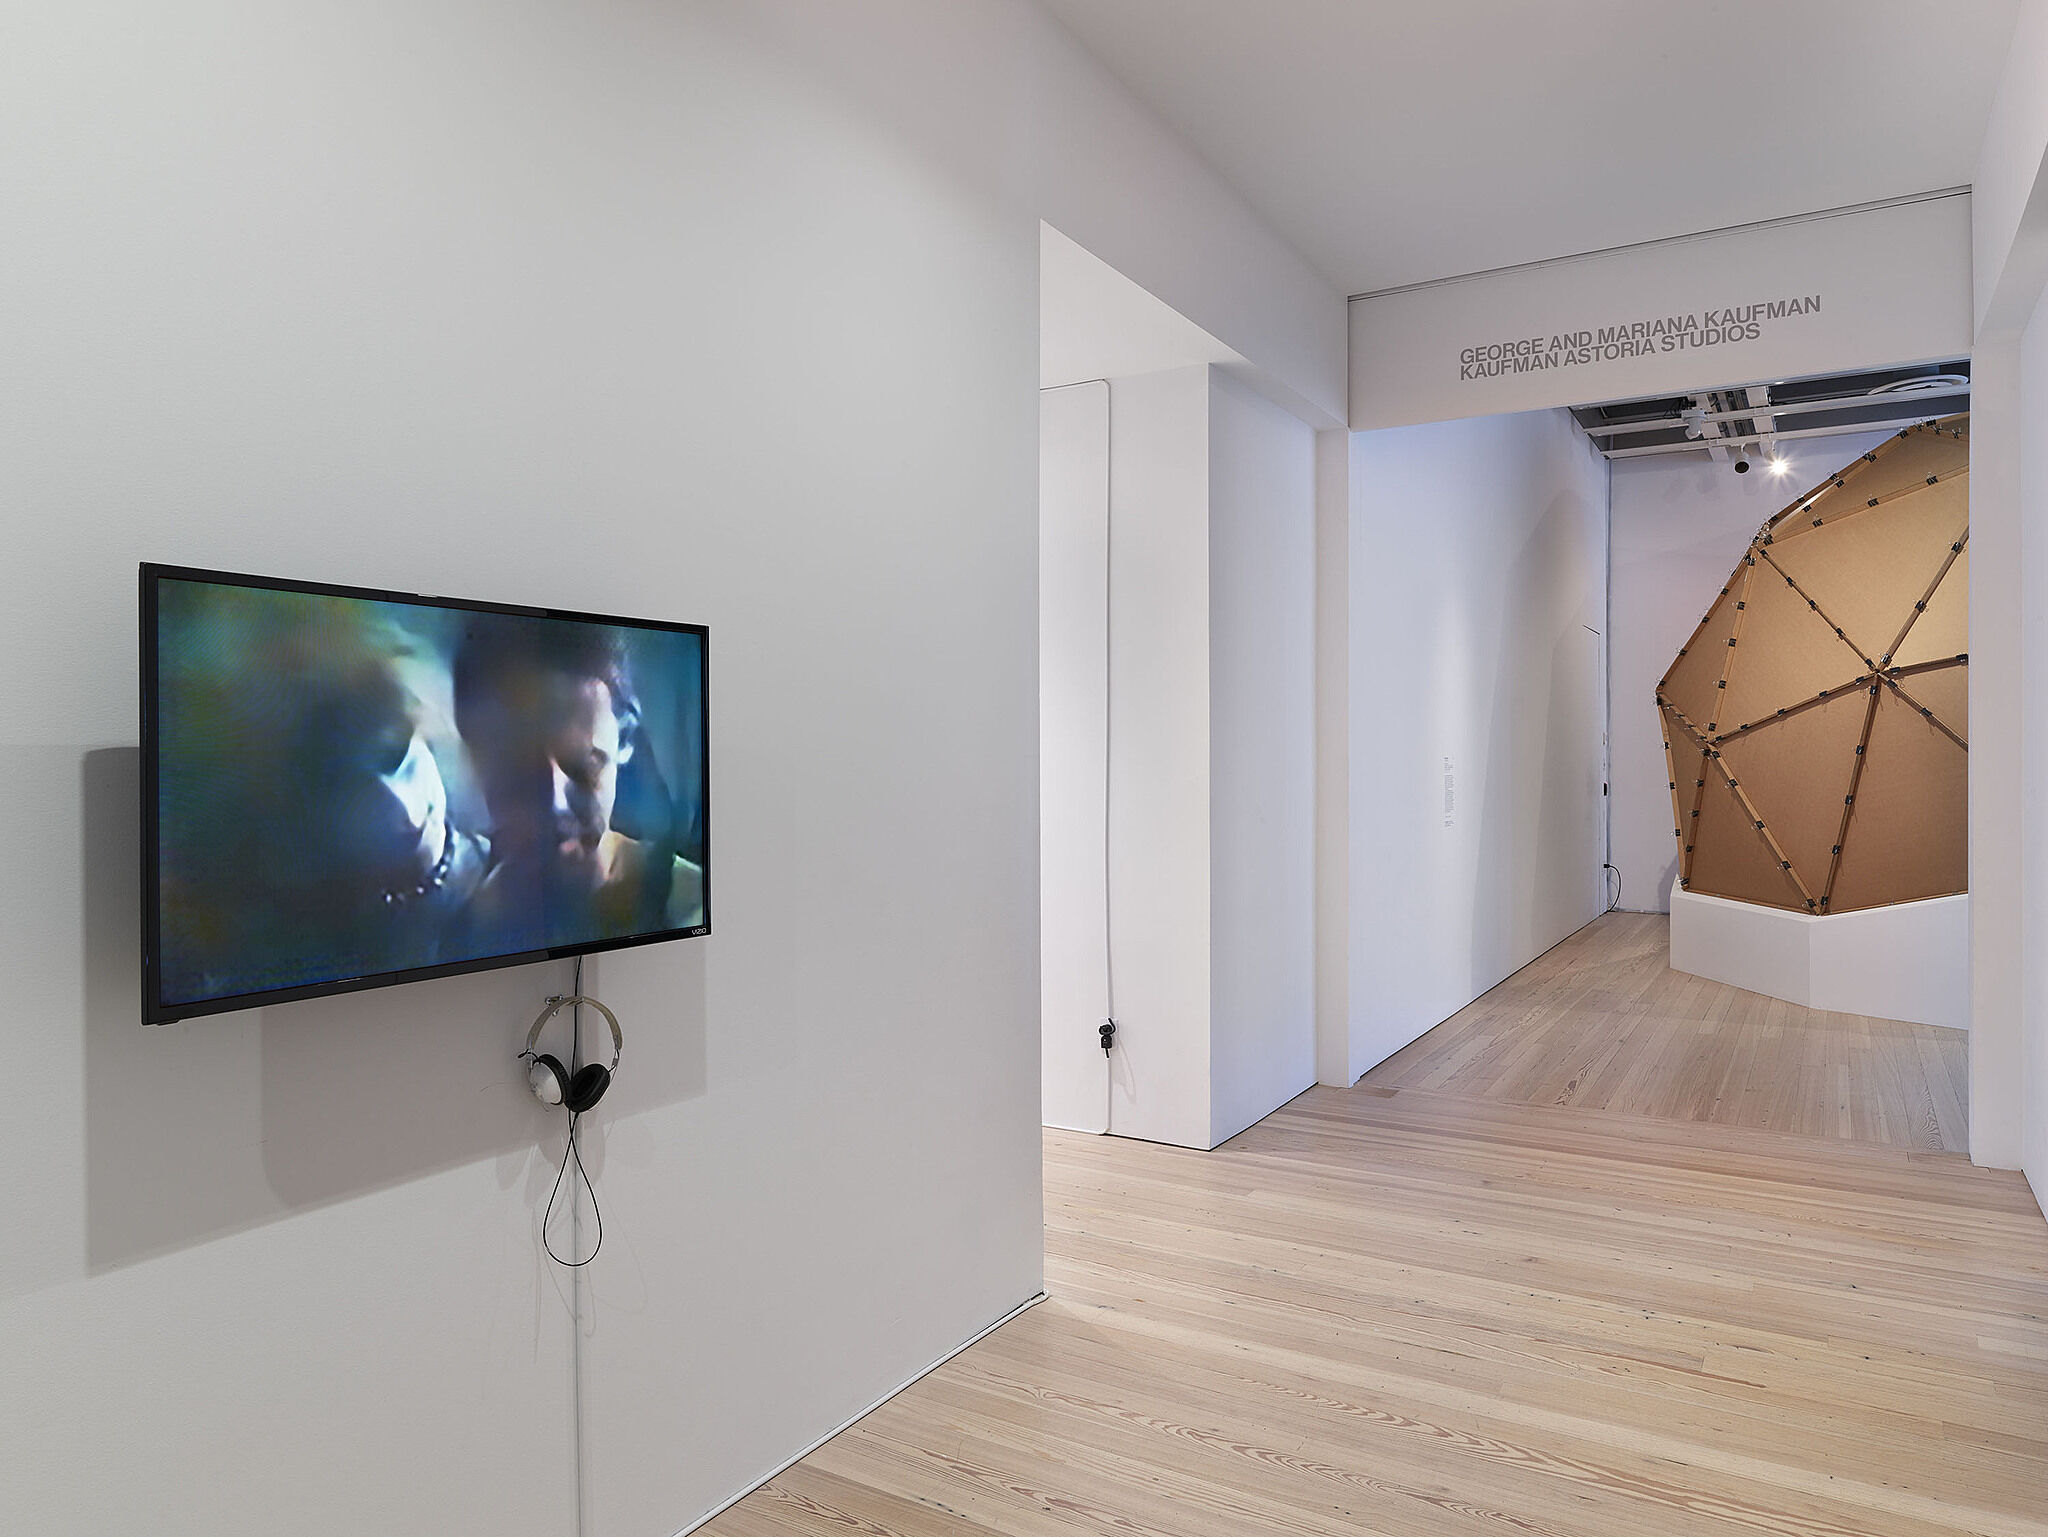 A video installation with a flat screen television showing two faces.